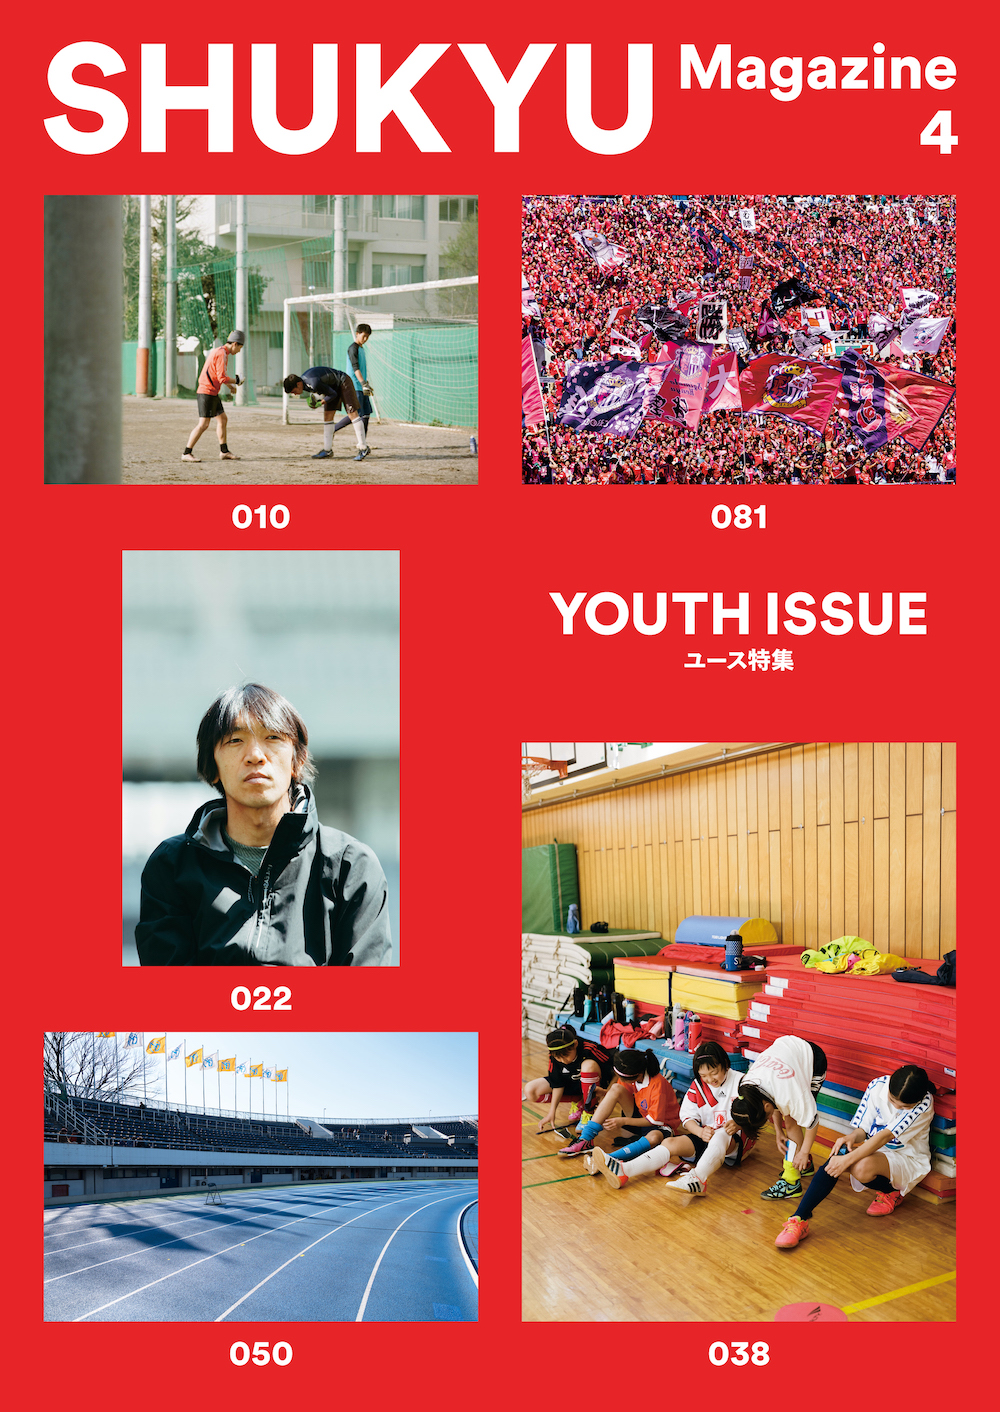 ISSUE 4 | YOUTH